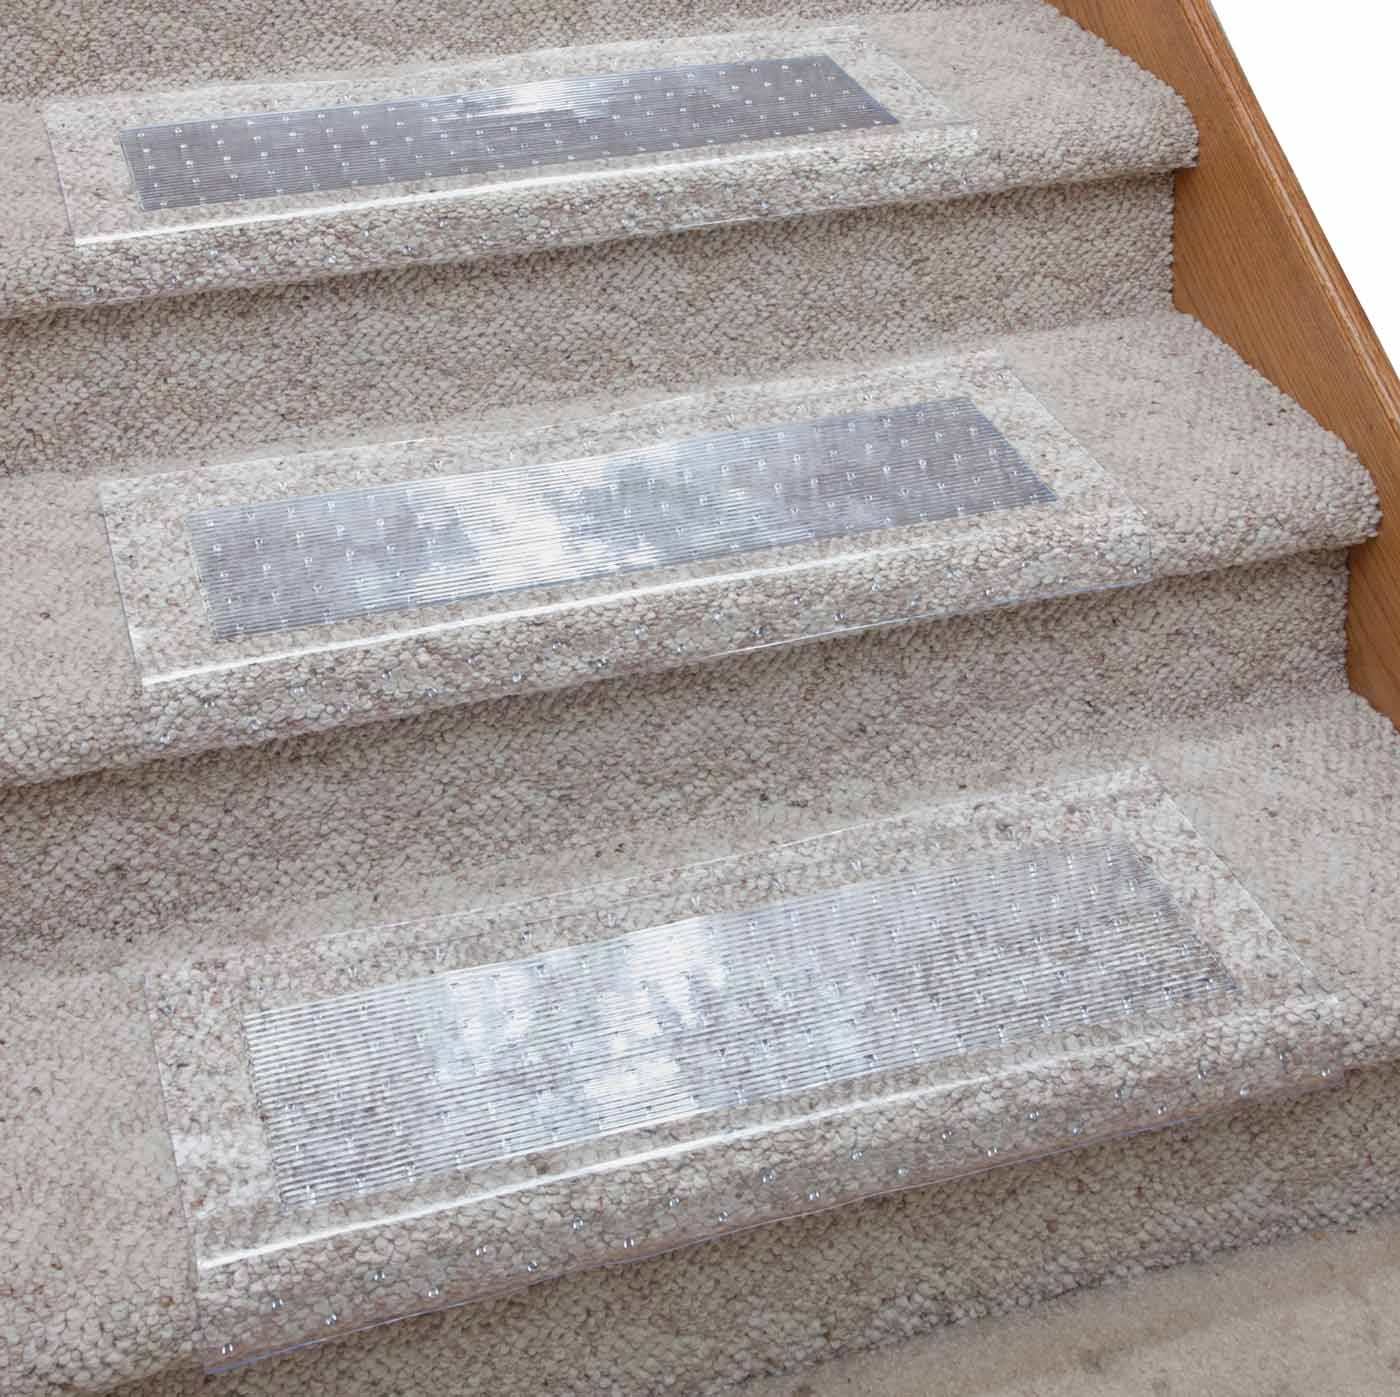 Clear Stair Carpet Protector By EasyComforts EBay